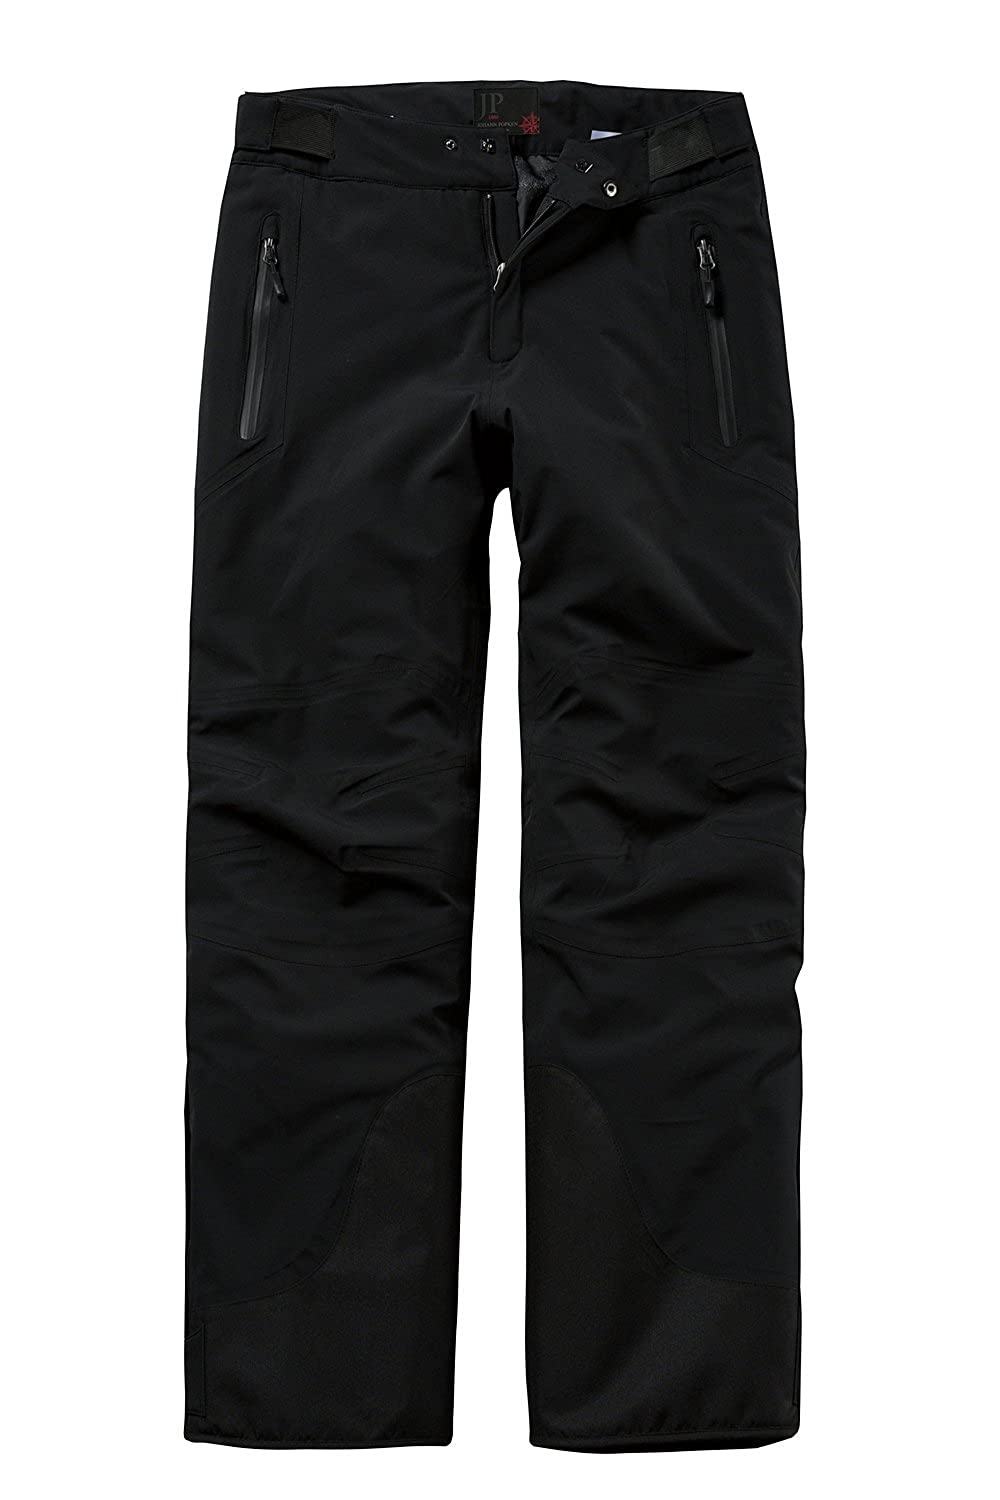 JP 1880 Men's Big & Tall Adjustable Thermal All-Weather Pants 705679